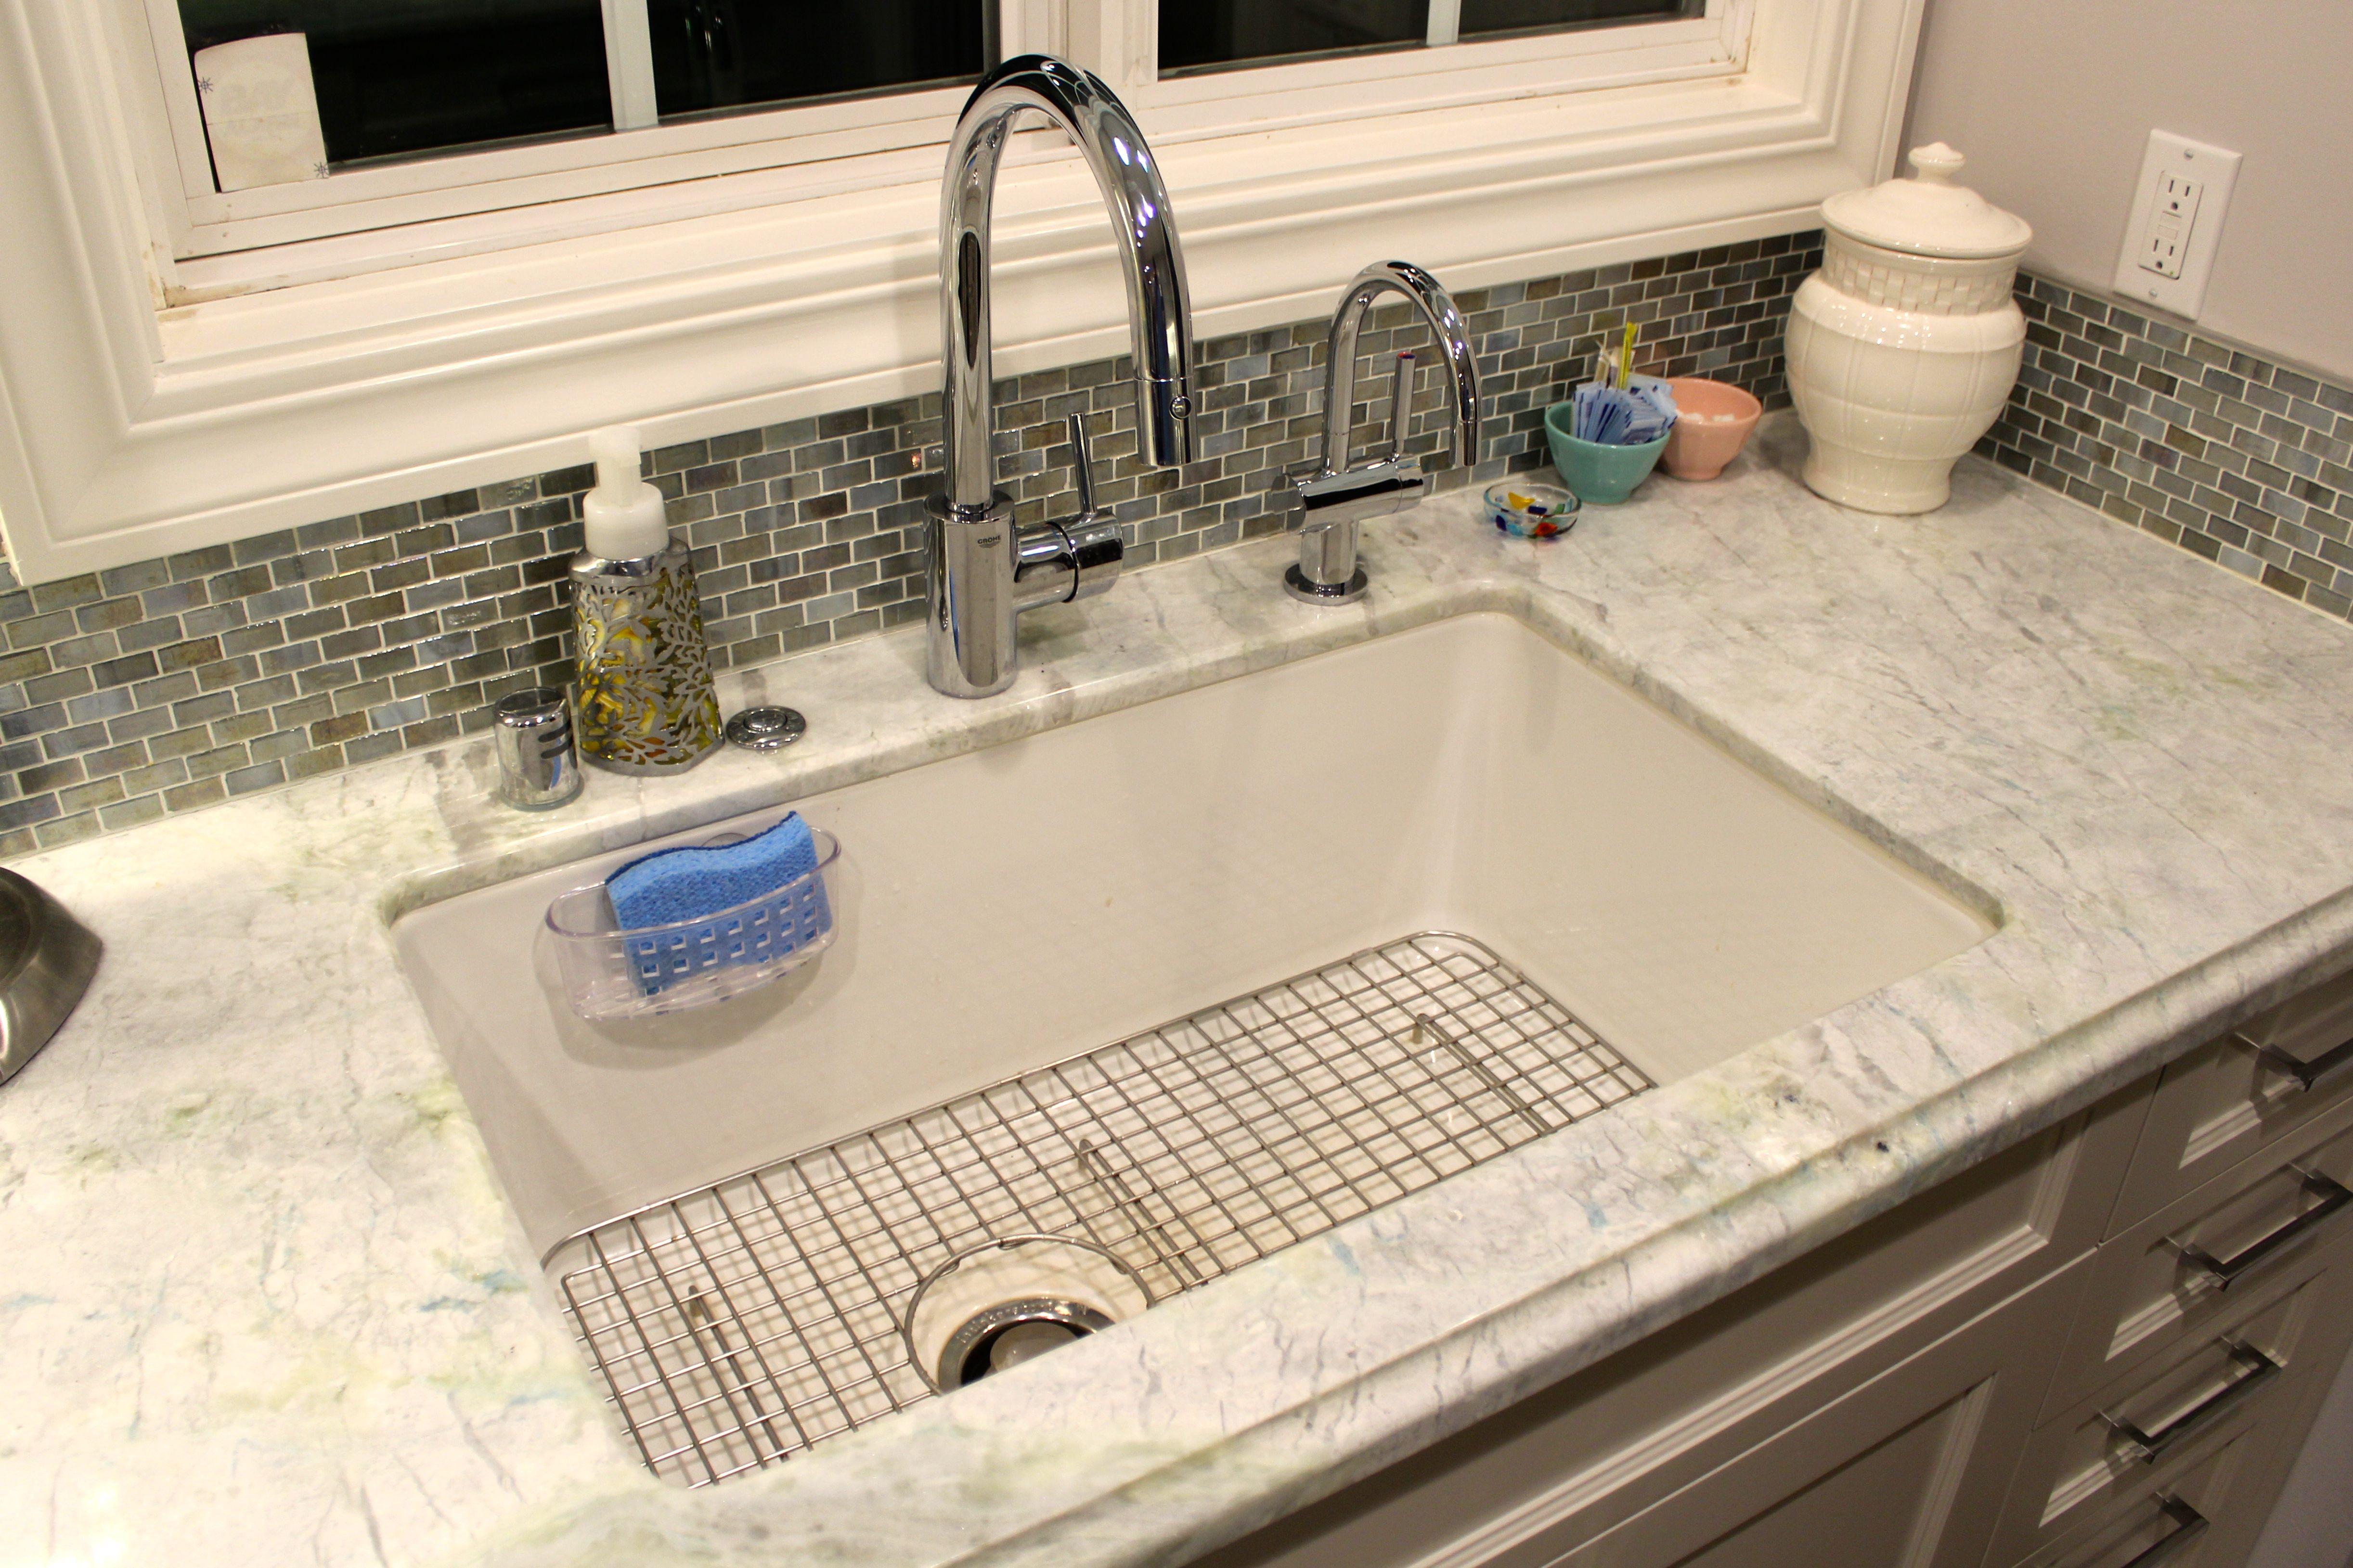 Rohl Allia white fireclay undermount single bowl sink and Rohl